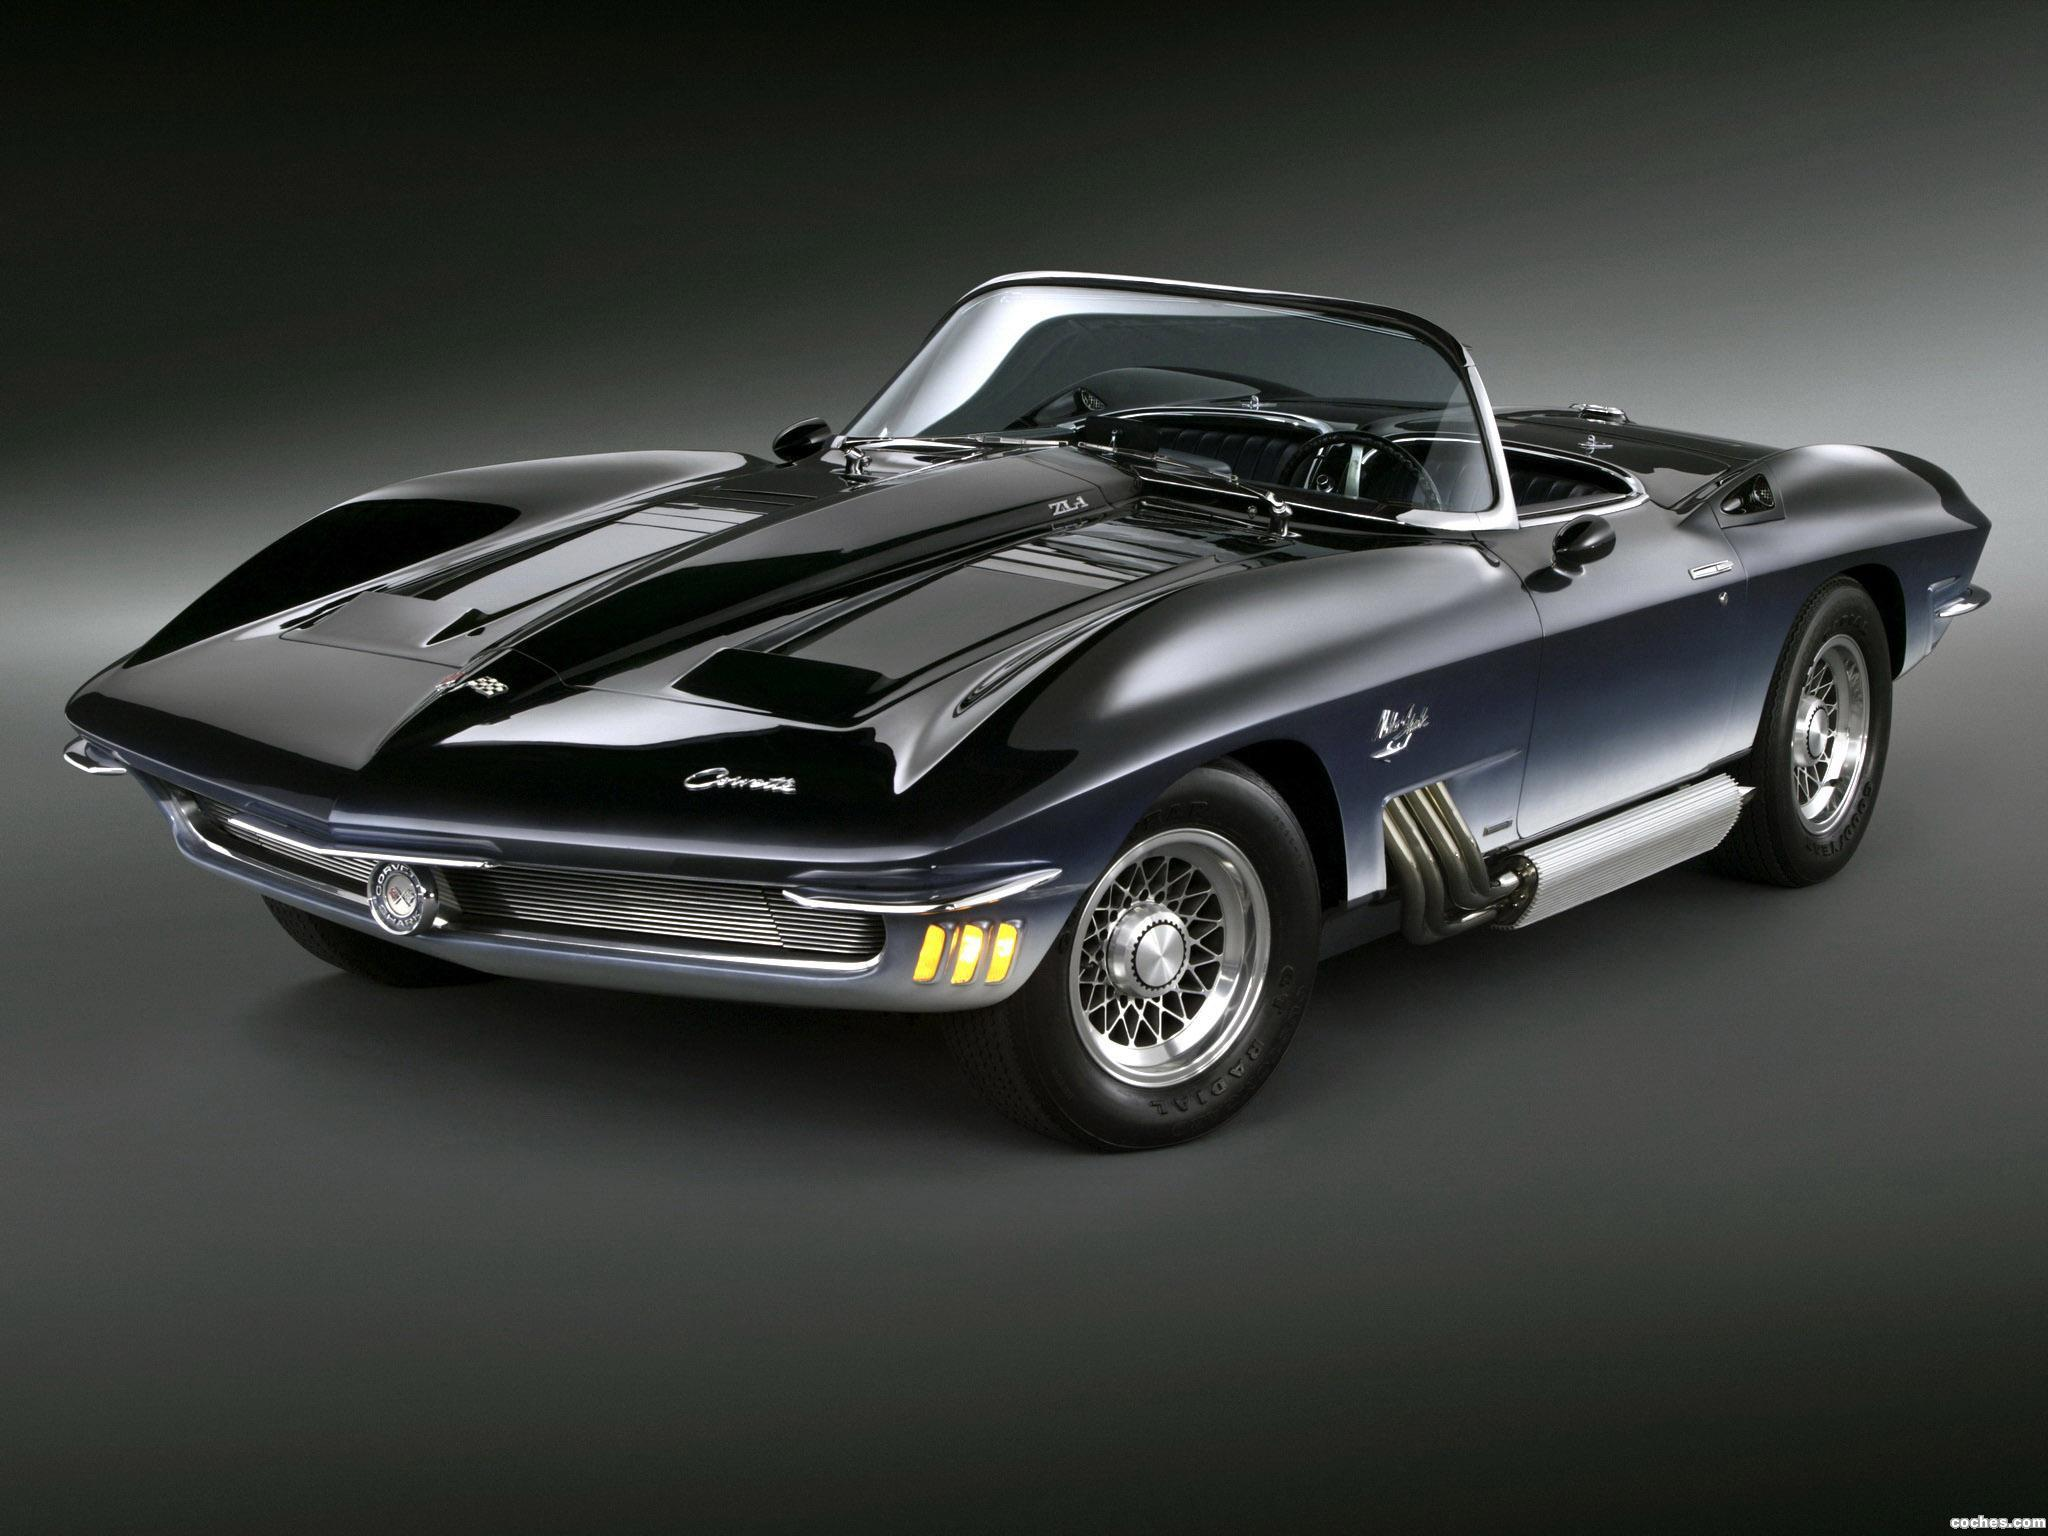 Foto 1 de Chevrolet Corvette Mako Shark Concept Car 1962